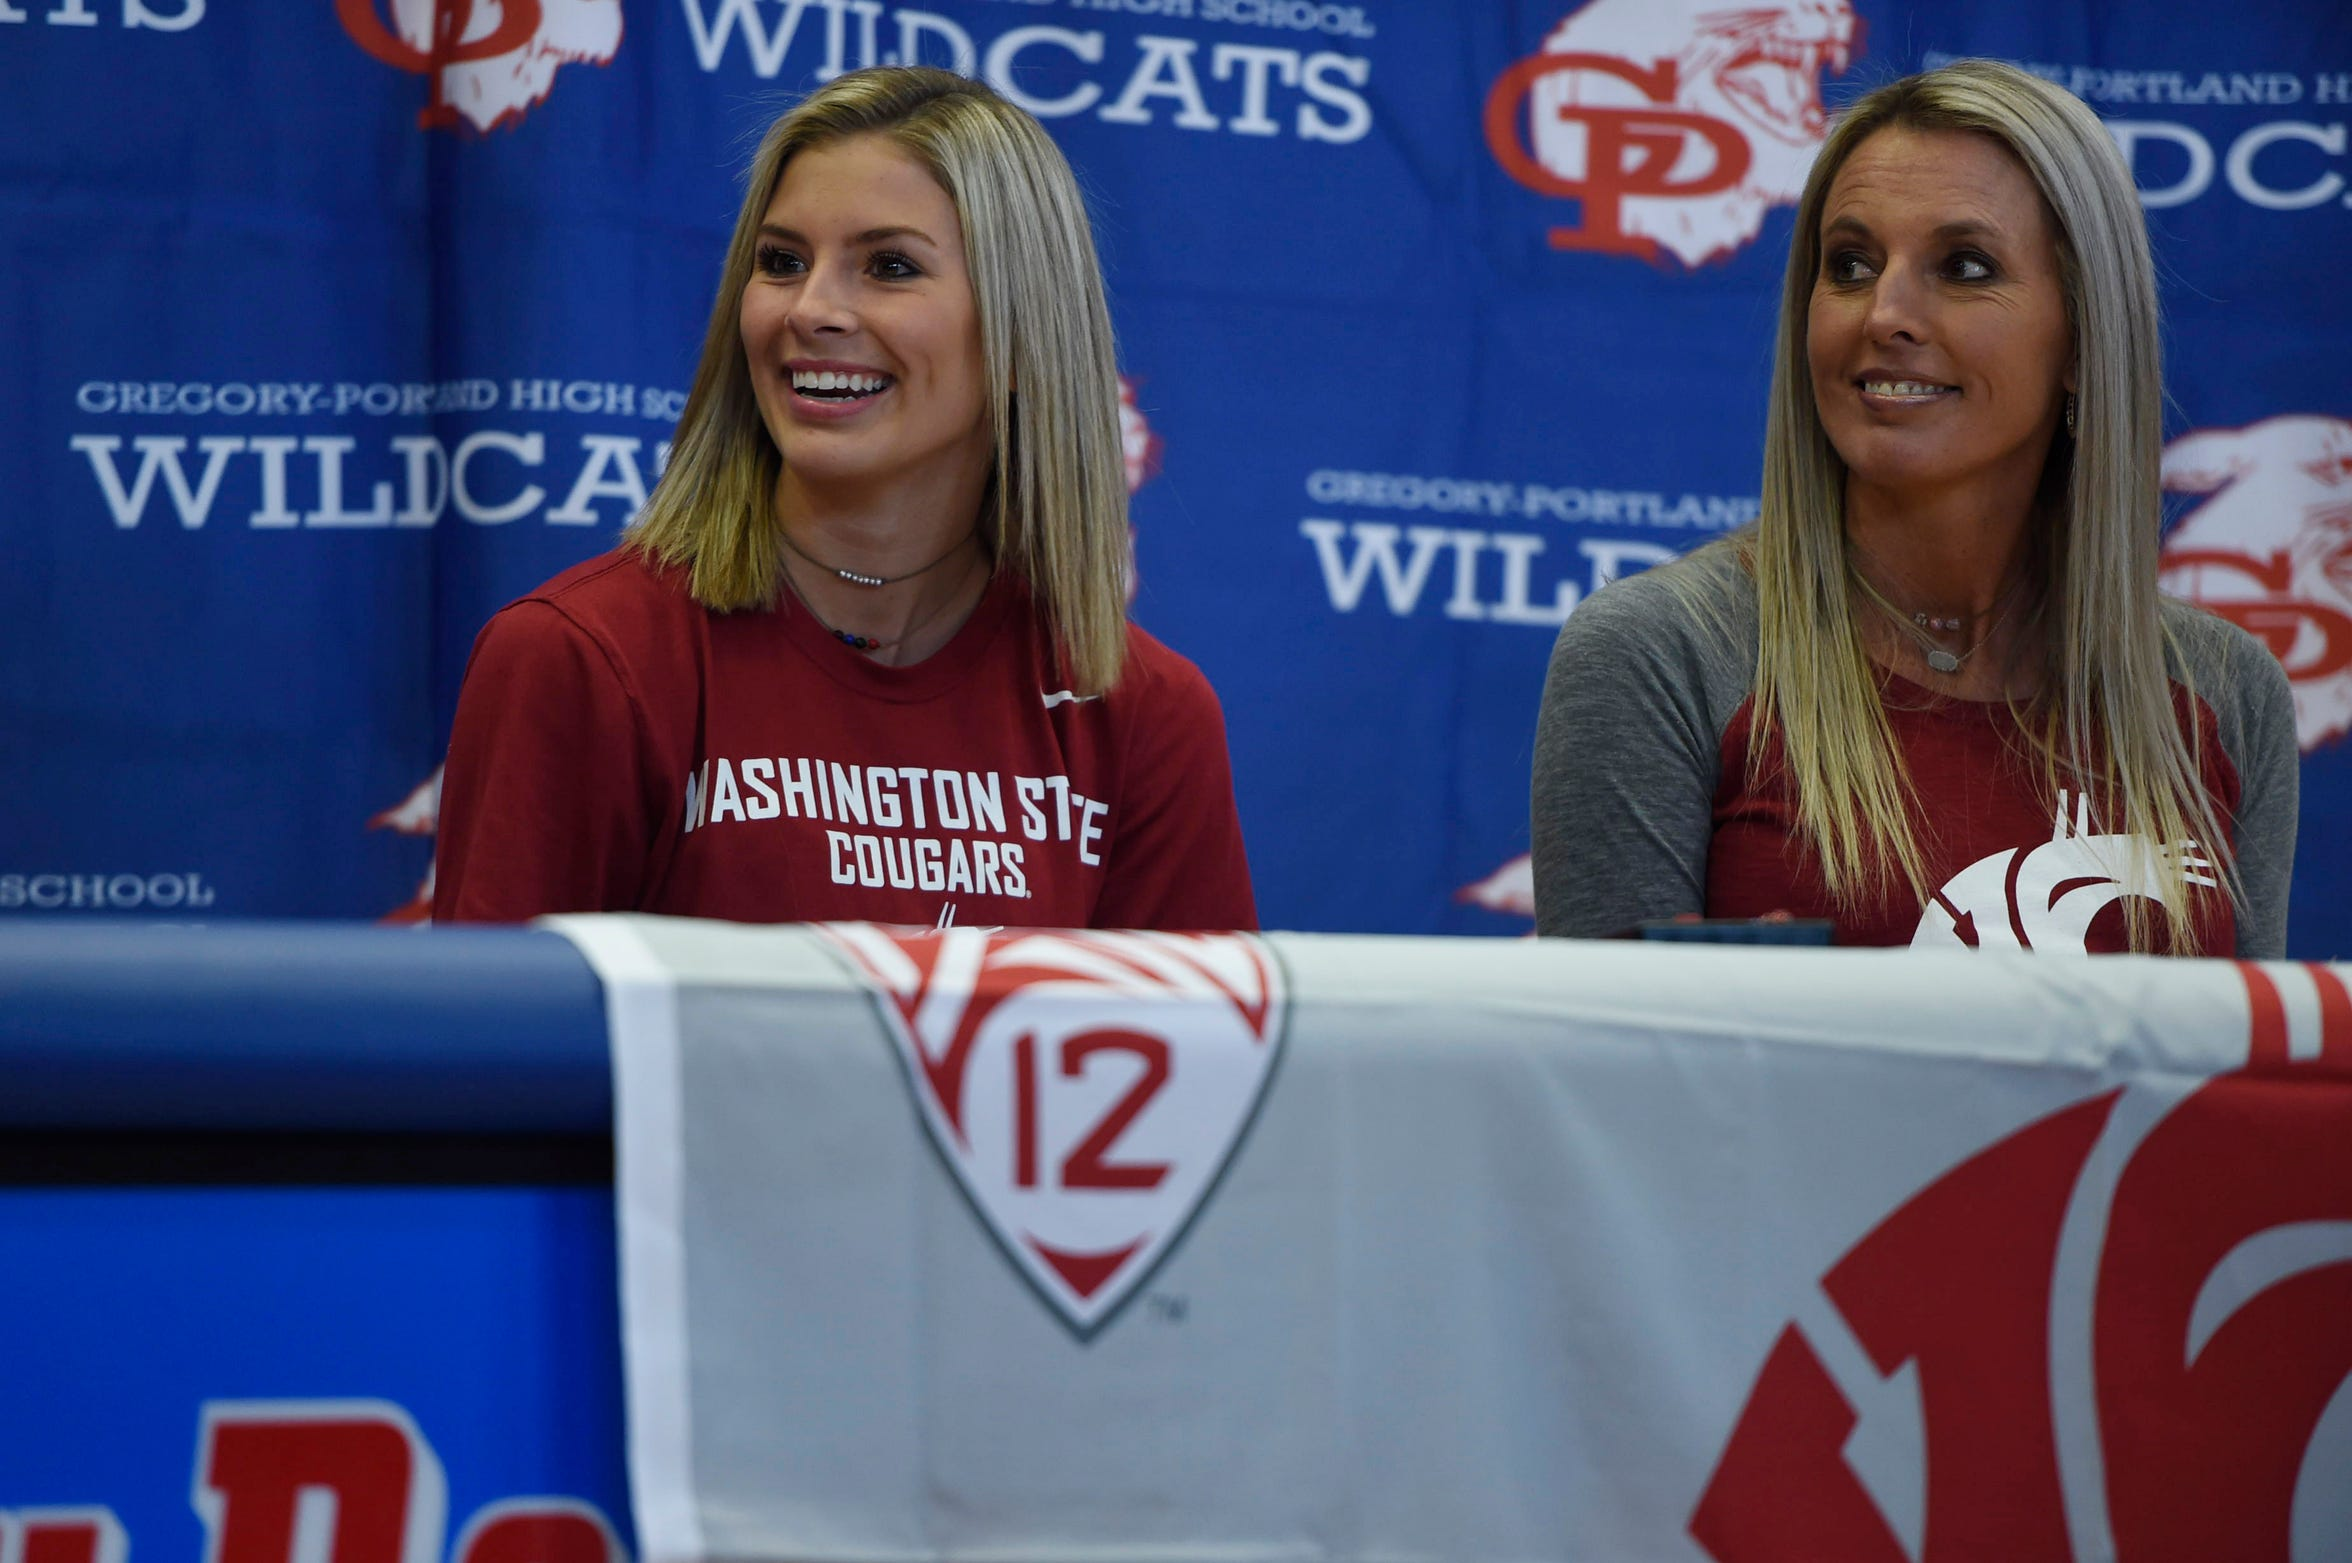 Colby Gonzales. left, smiles during her signing day next to her mother Sharla Gonzales, right,  Wednesday, Nov. 13, 2019, at Gregory-Portland High School. Gonzales has 1,847 career digs.